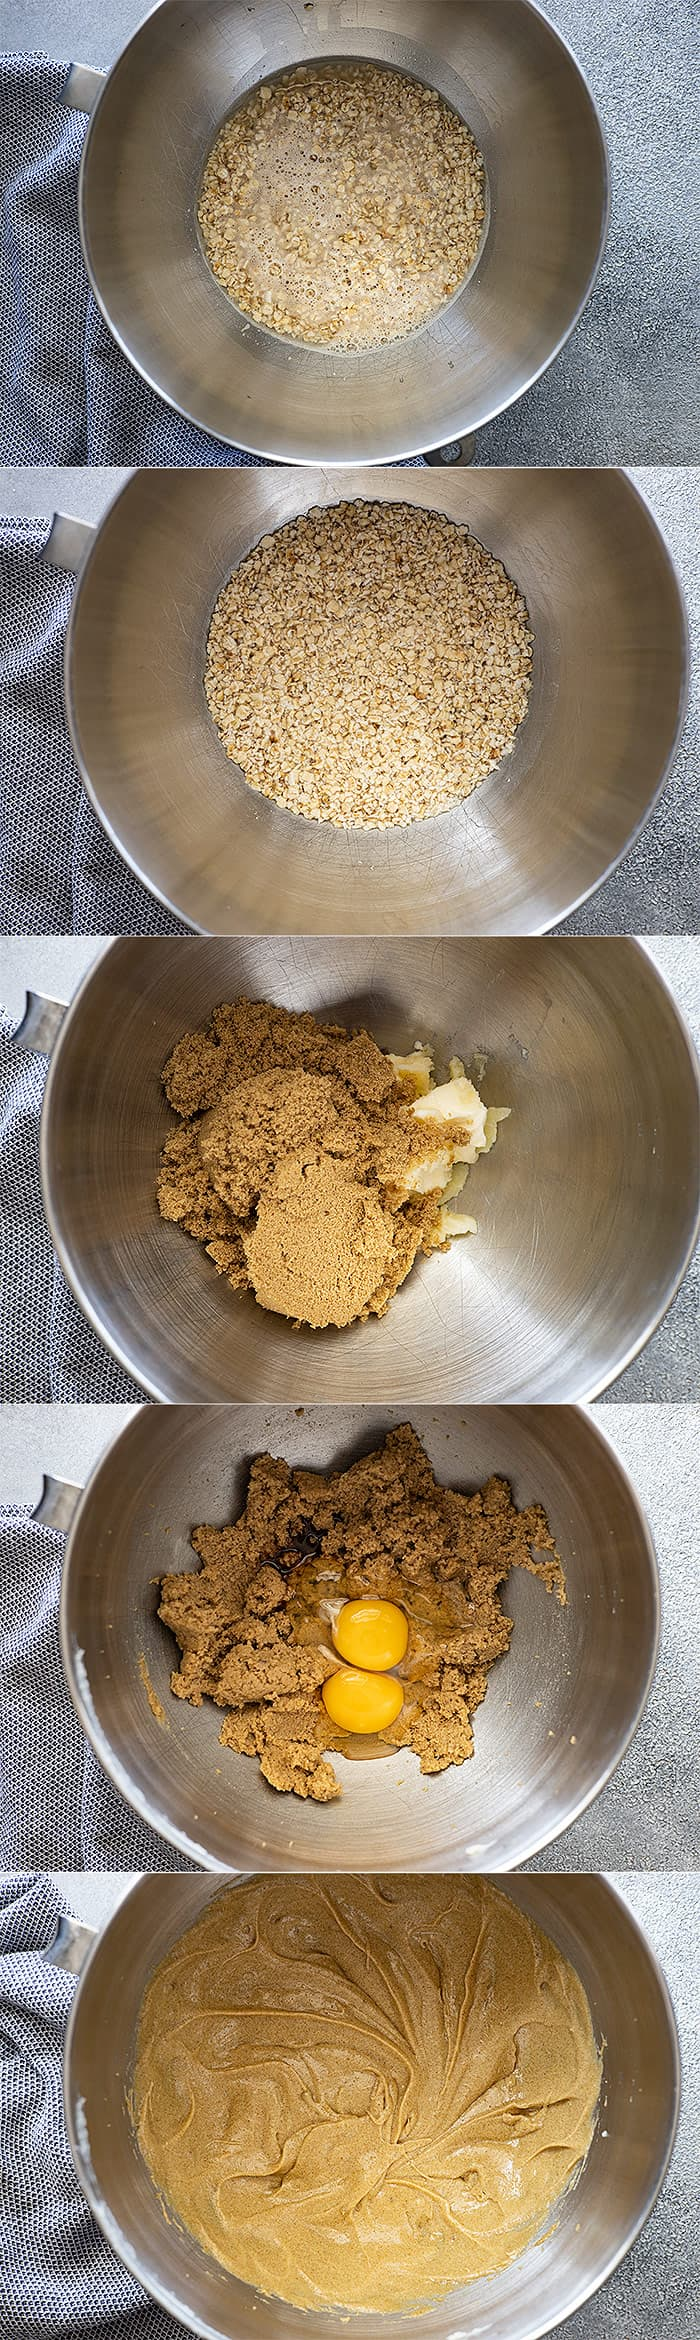 Several pictures showing the steps to make the cake.